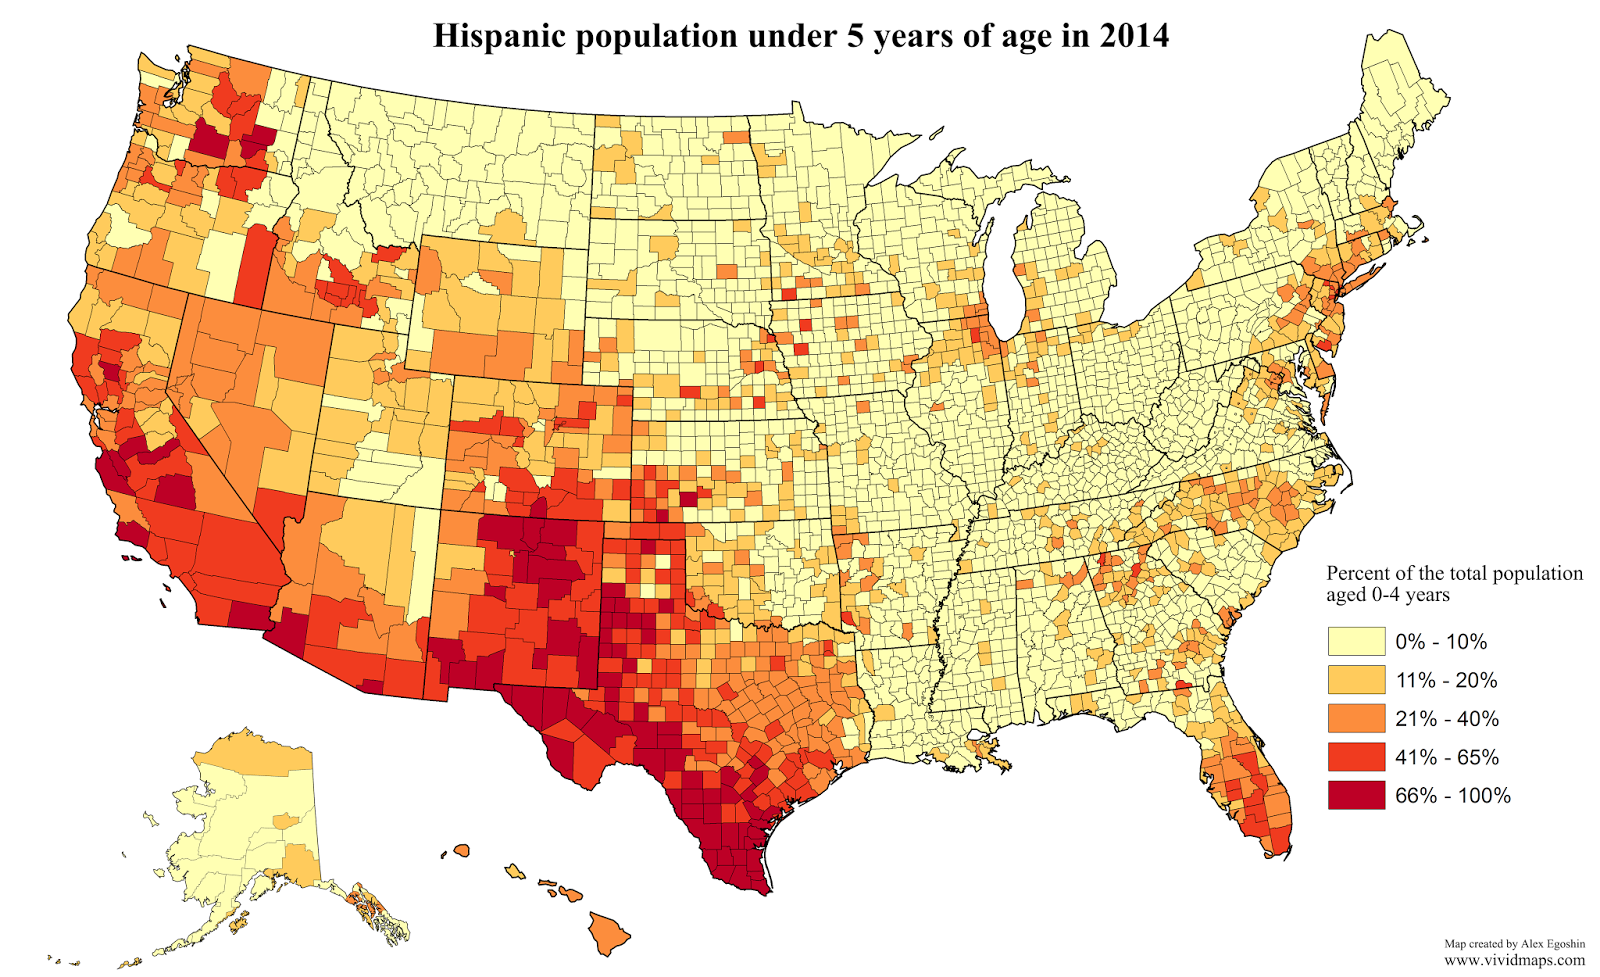 Hispanic population under 5 years of age in 2014